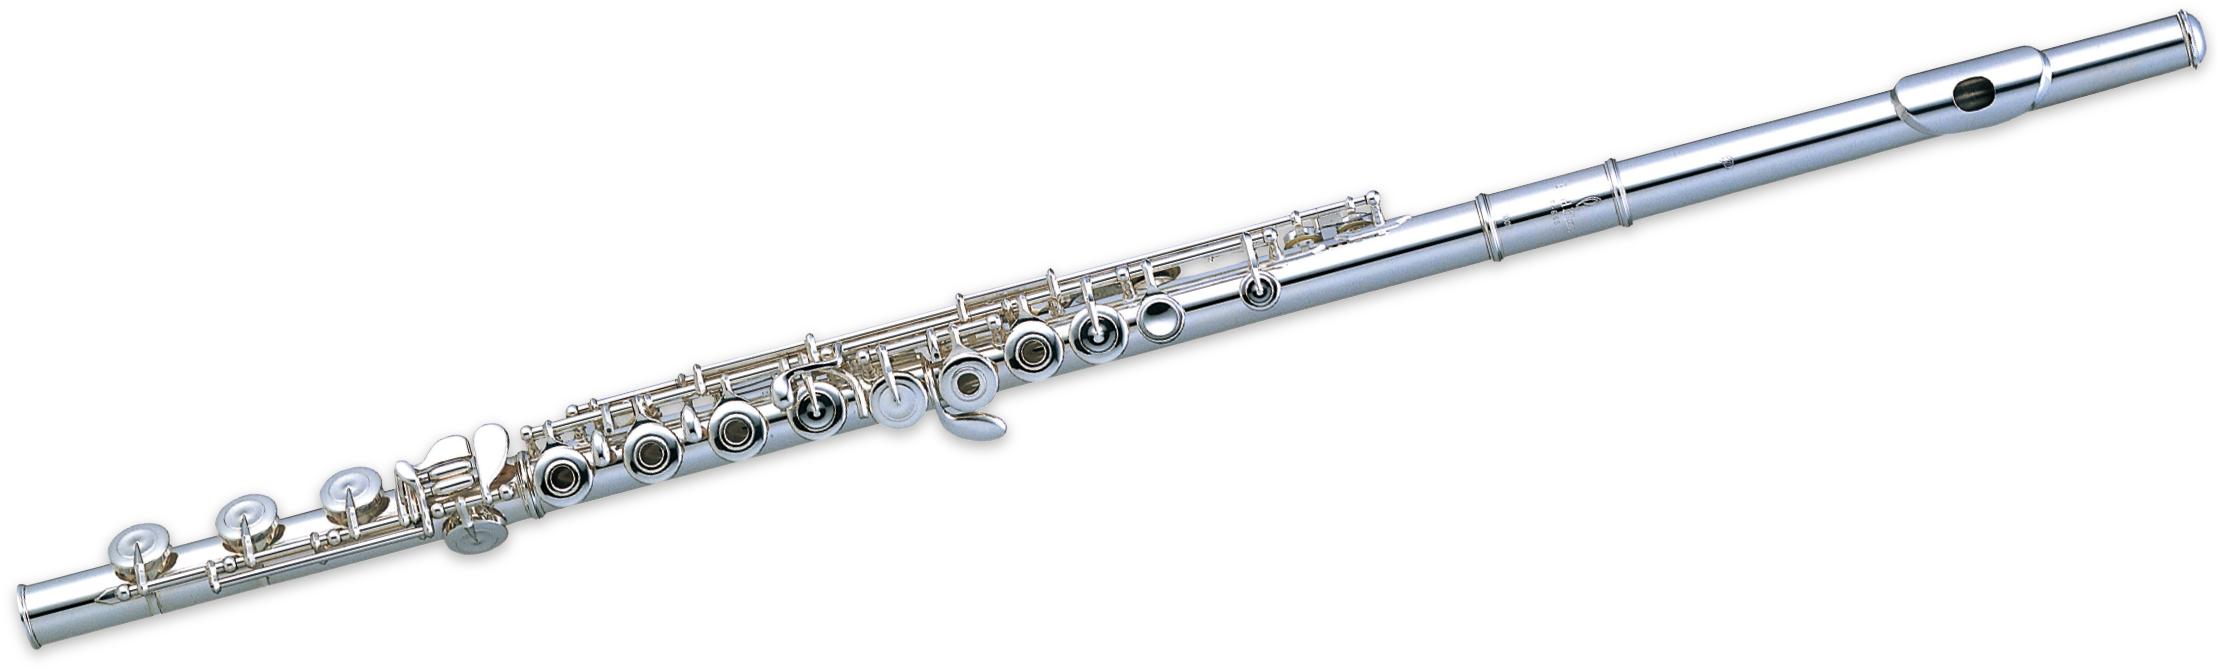 High-Resolution flute musical instrument image